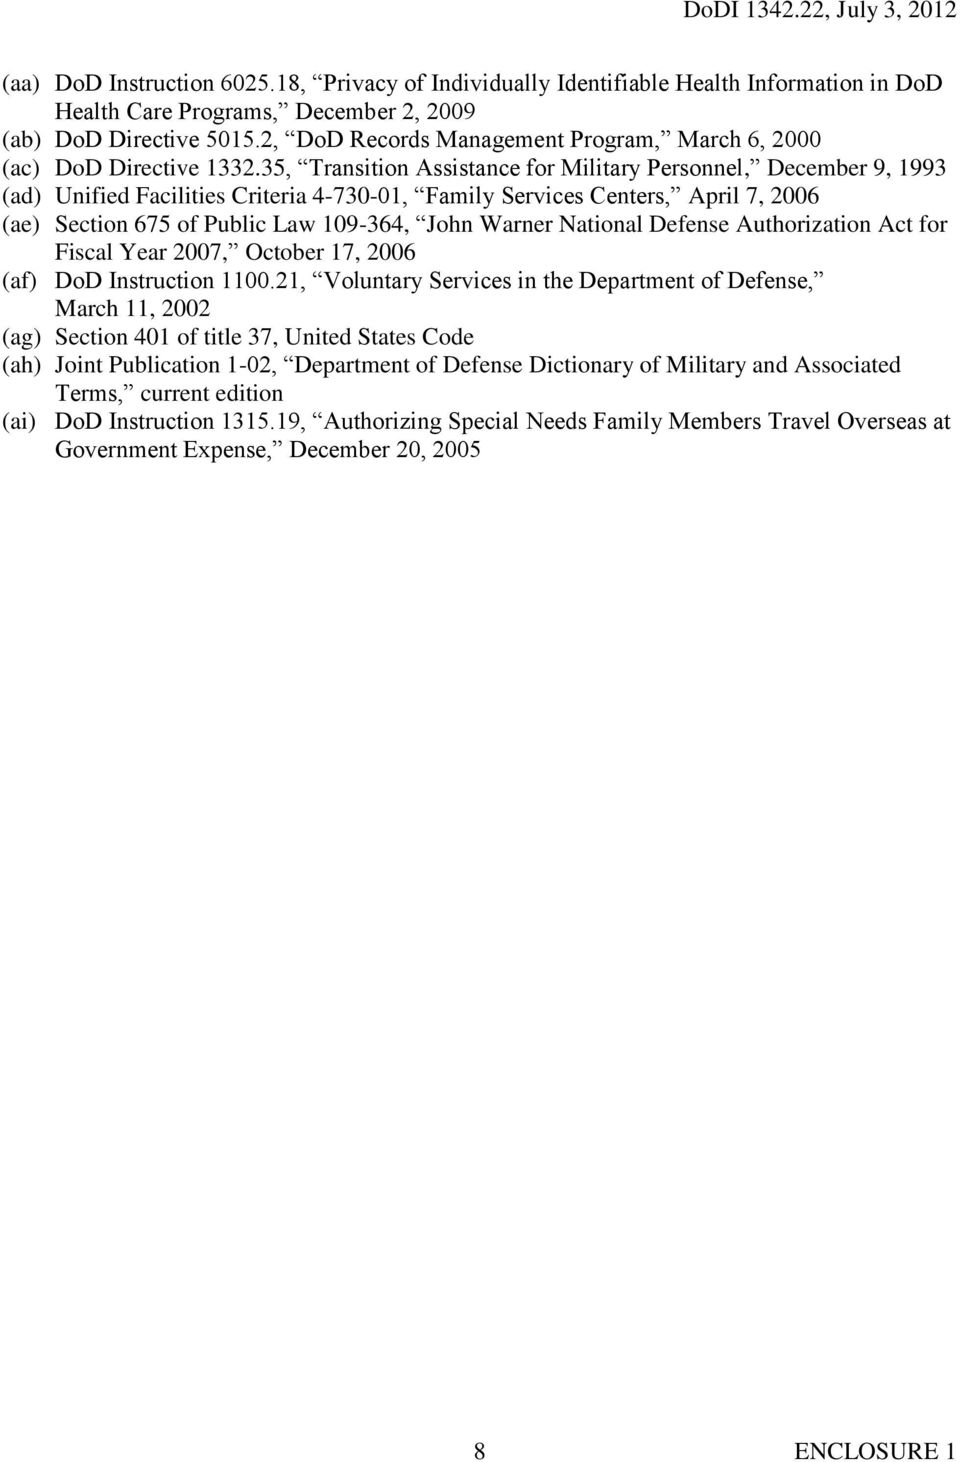 35, Transition Assistance for Military Personnel, December 9, 1993 (ad) Unified Facilities Criteria 4-730-01, Family Services Centers, April 7, 2006 (ae) Section 675 of Public Law 109-364, John